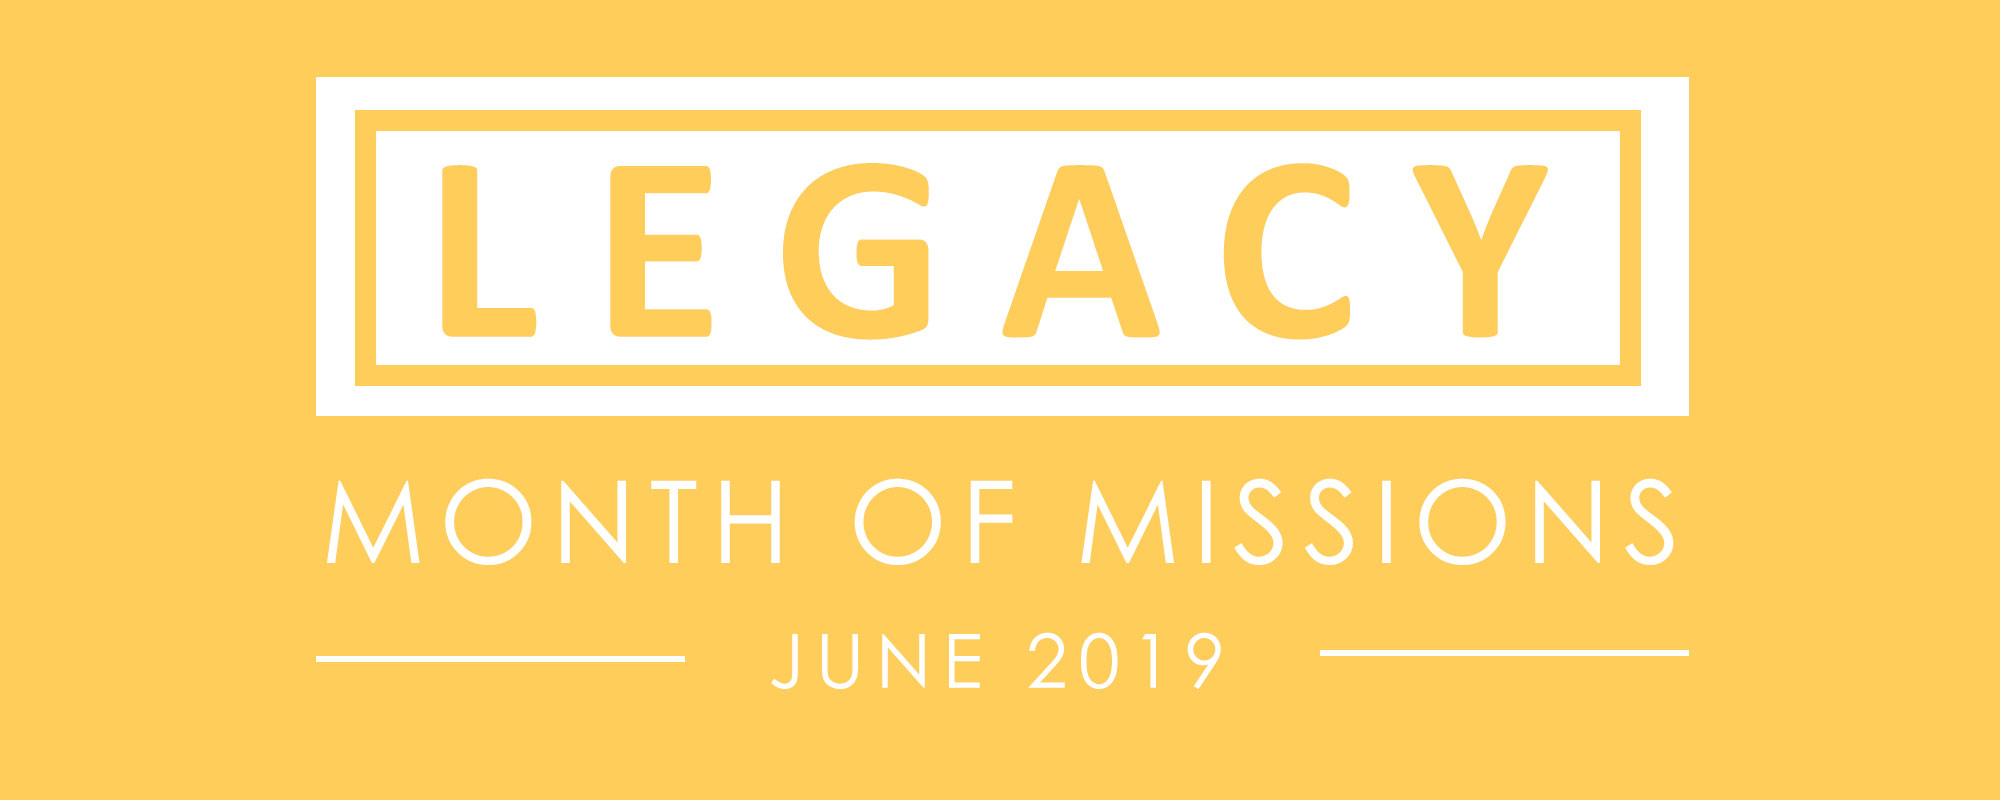 Month of Mission